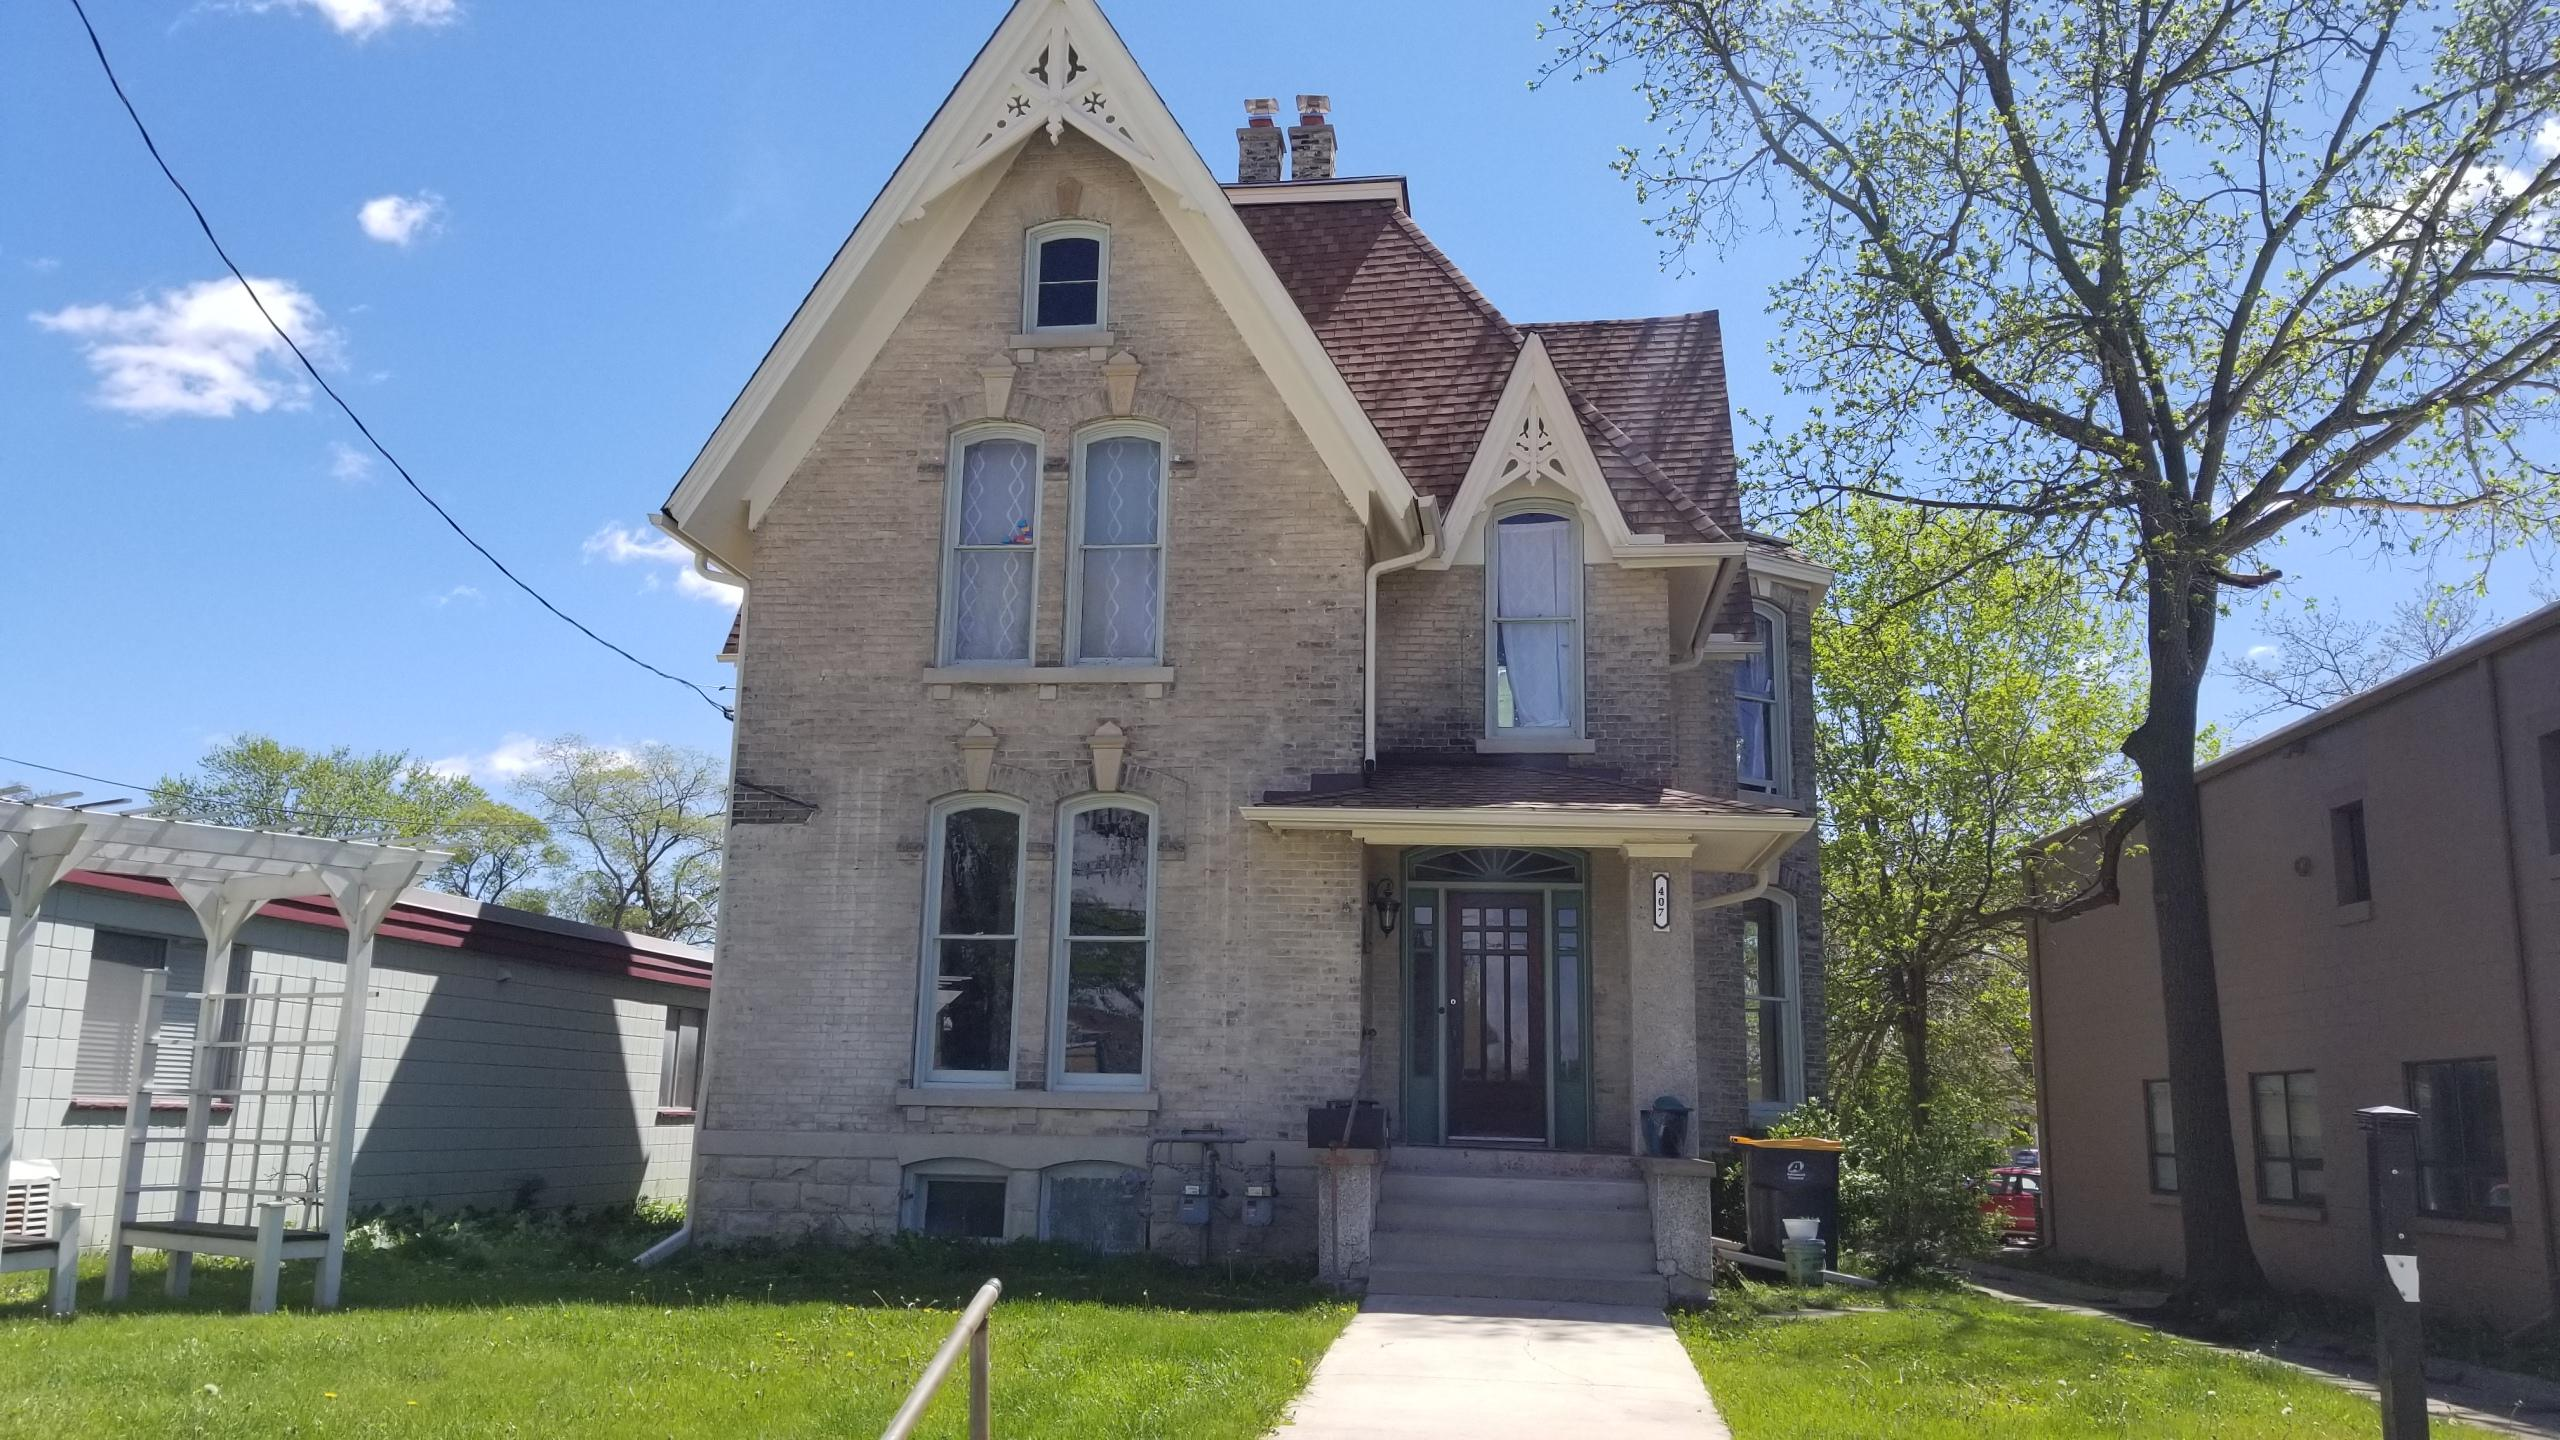 407 Grand Ave, Waukesha, Wisconsin 53186, 3 Bedrooms Bedrooms, ,1 BathroomBathrooms,Single-Family,For Sale,Grand Ave,1638596